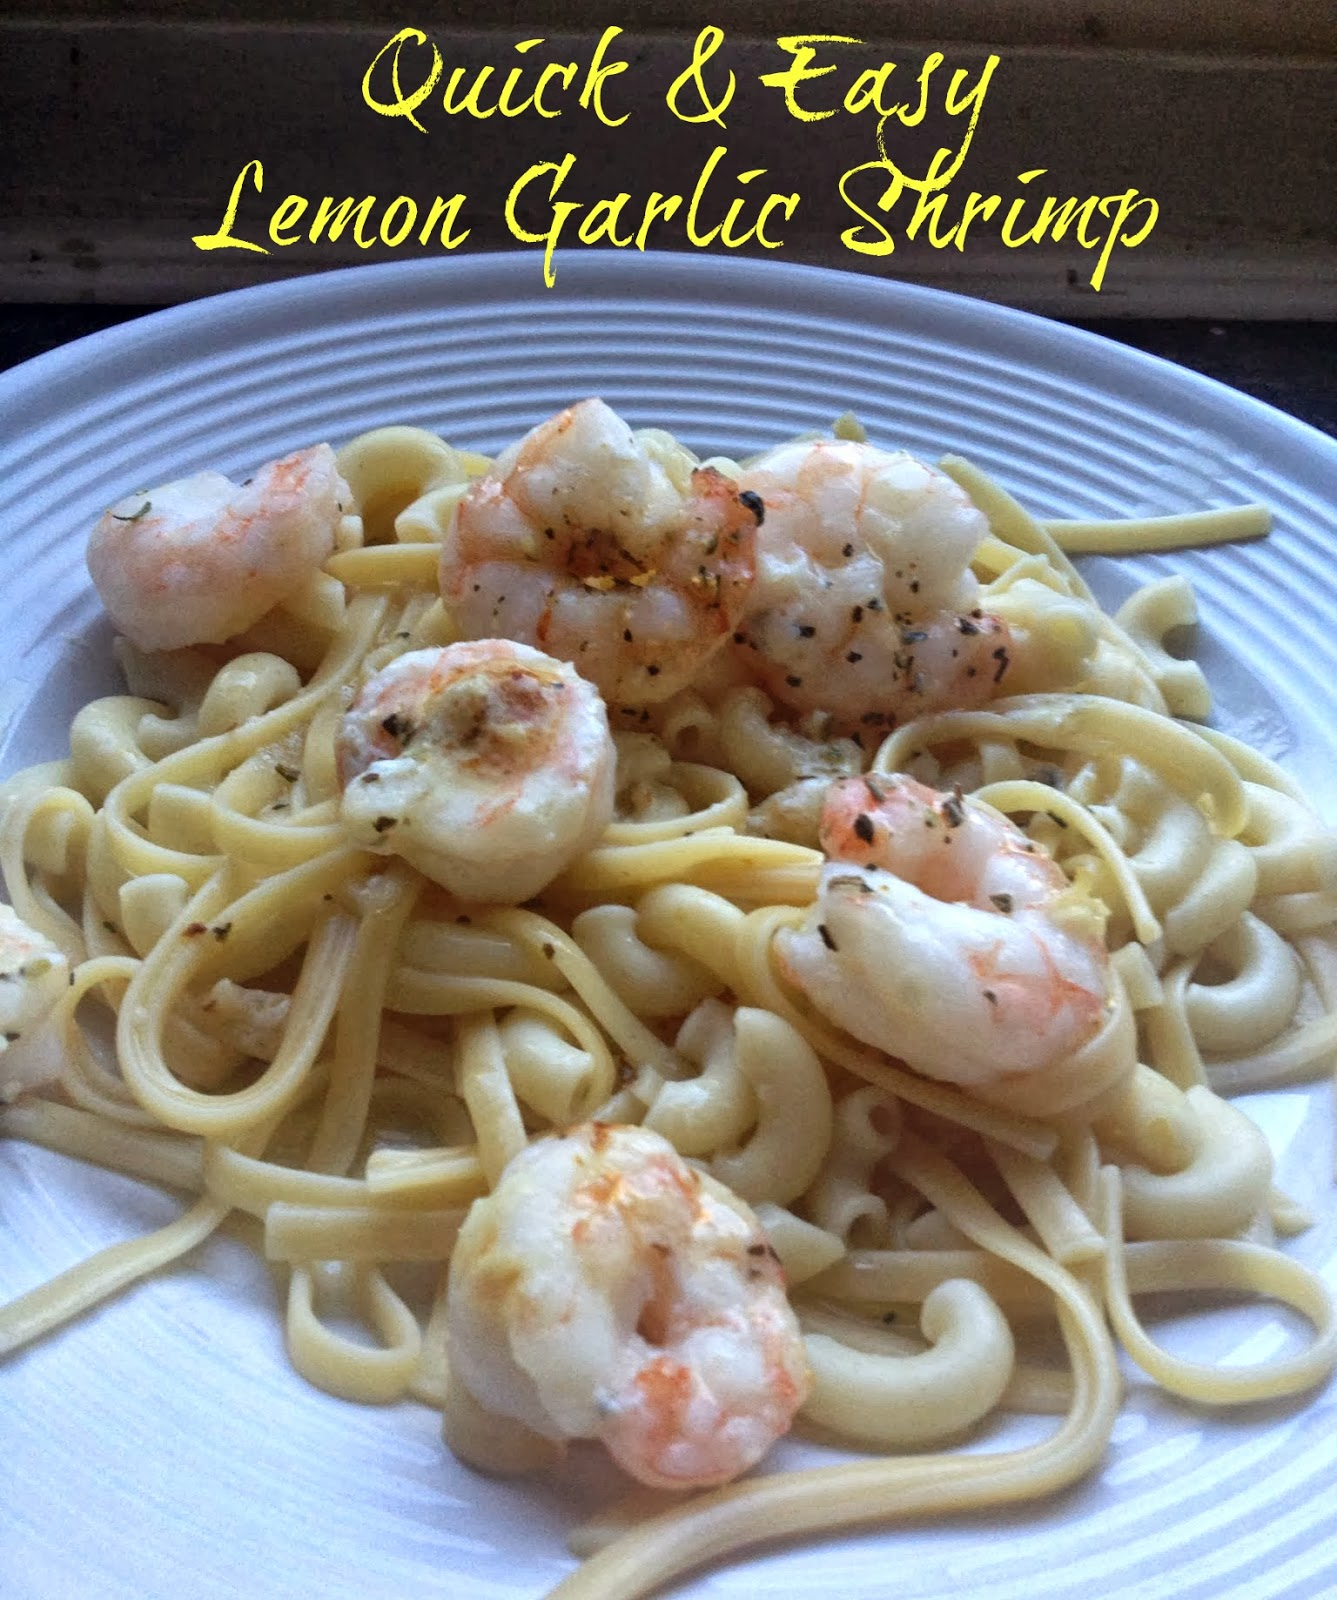 ... shrimp and then I drizzled butter over the pasta and dinner was served